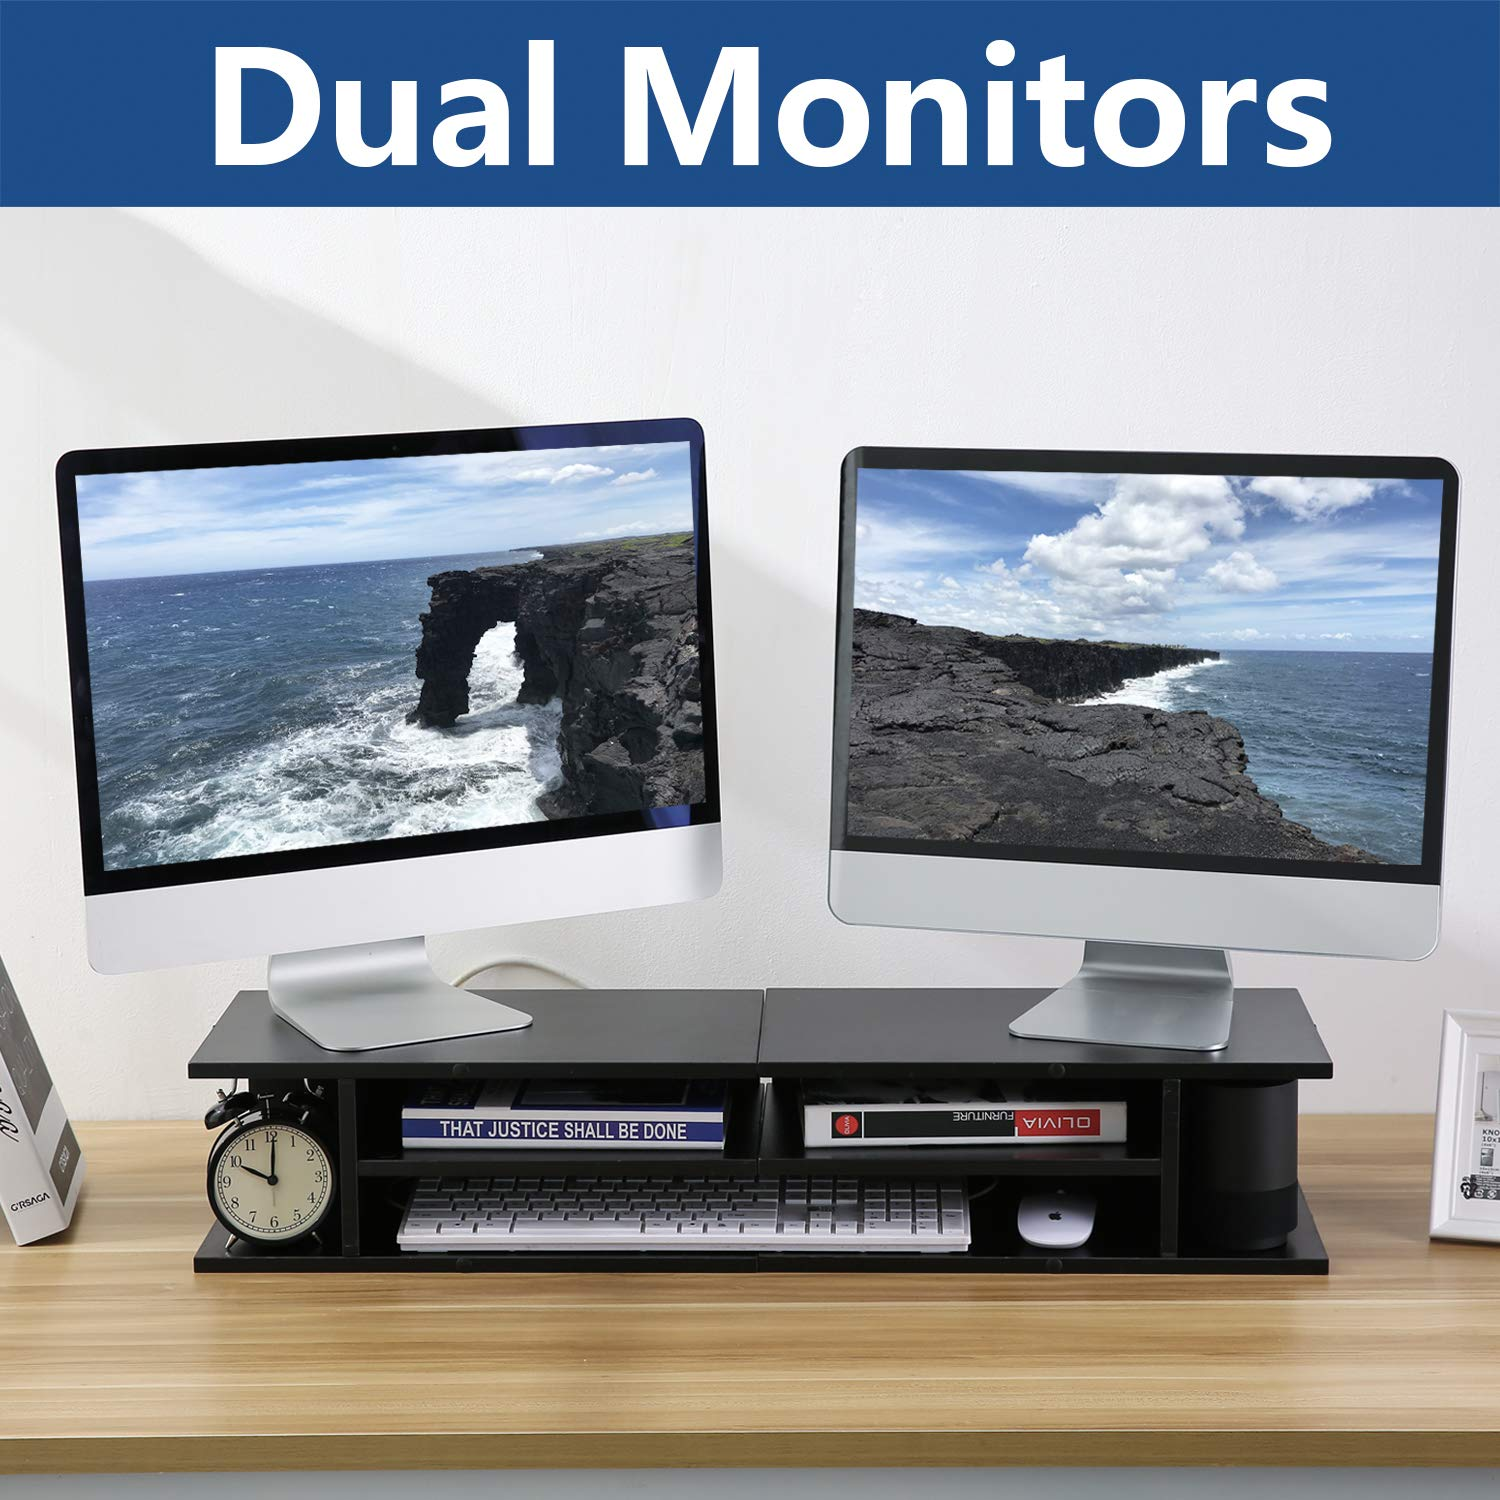 320f2afa8ef Amazon.com  Rfiver Dual Monitor Stand Riser Printer Stand for Desk with  Versatile Storage